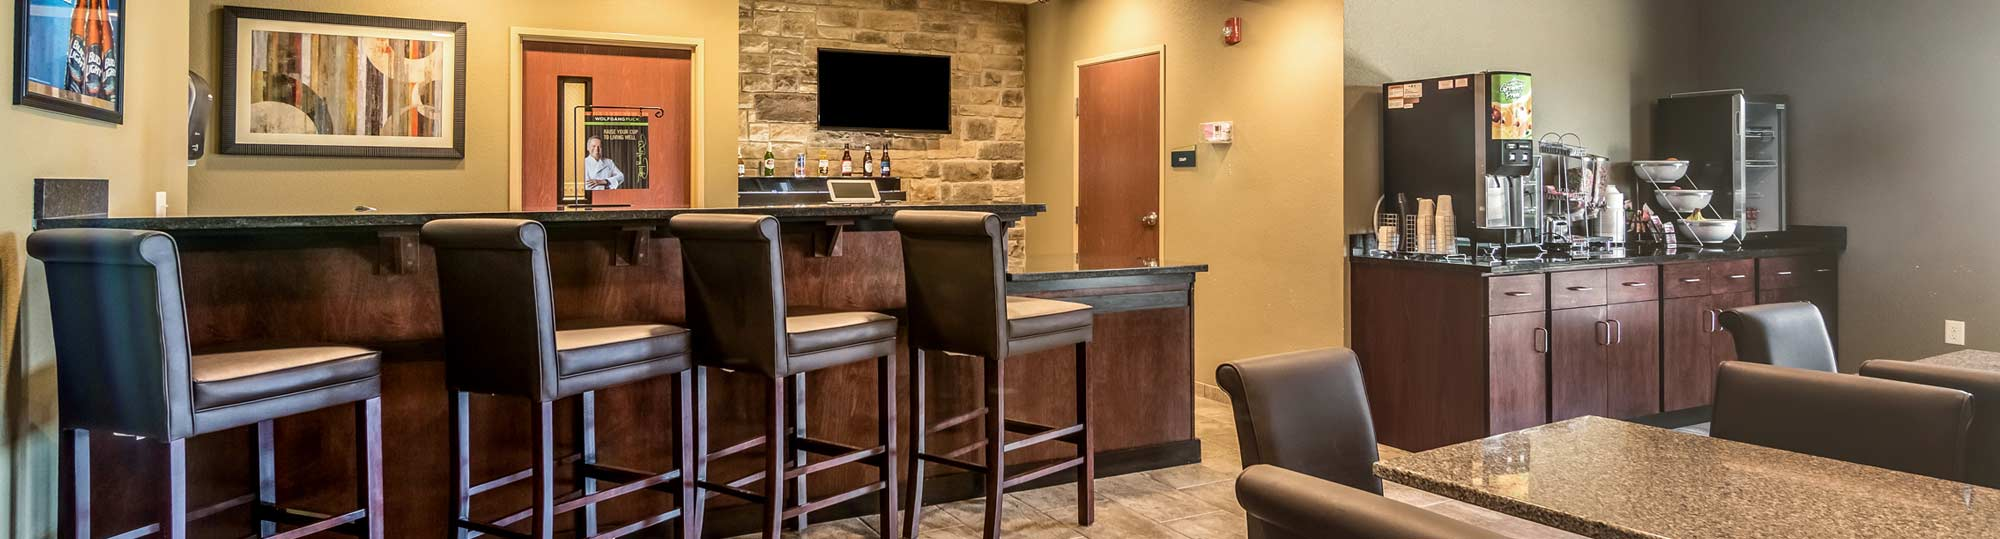 Cobblestone Inn and Suites Lakin